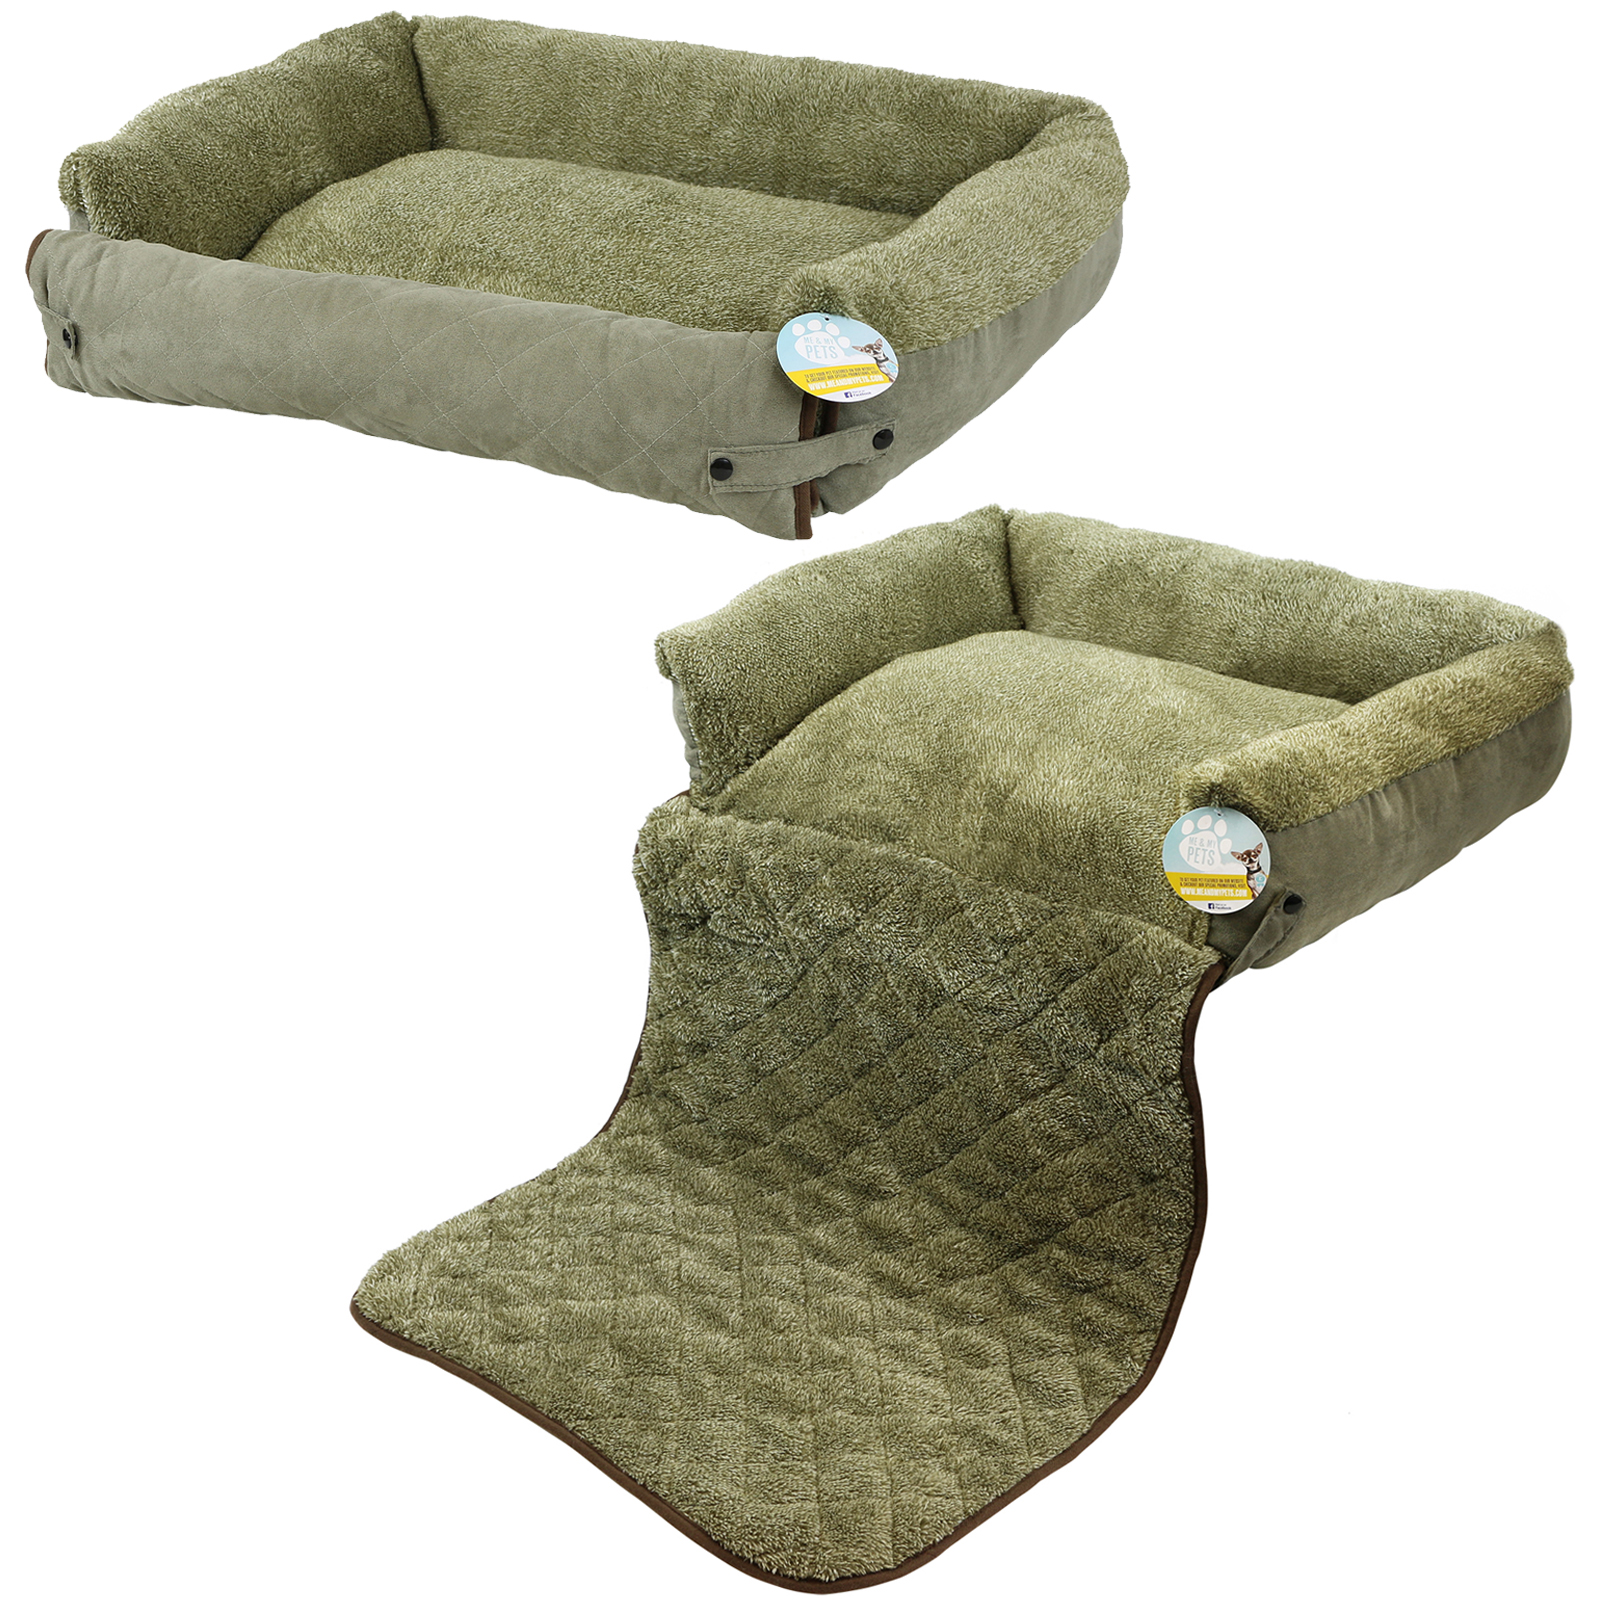 ME & MY PET QUILTED GREEN FLEECE FOLD OUT CAT DOG BED SOFA COUCH